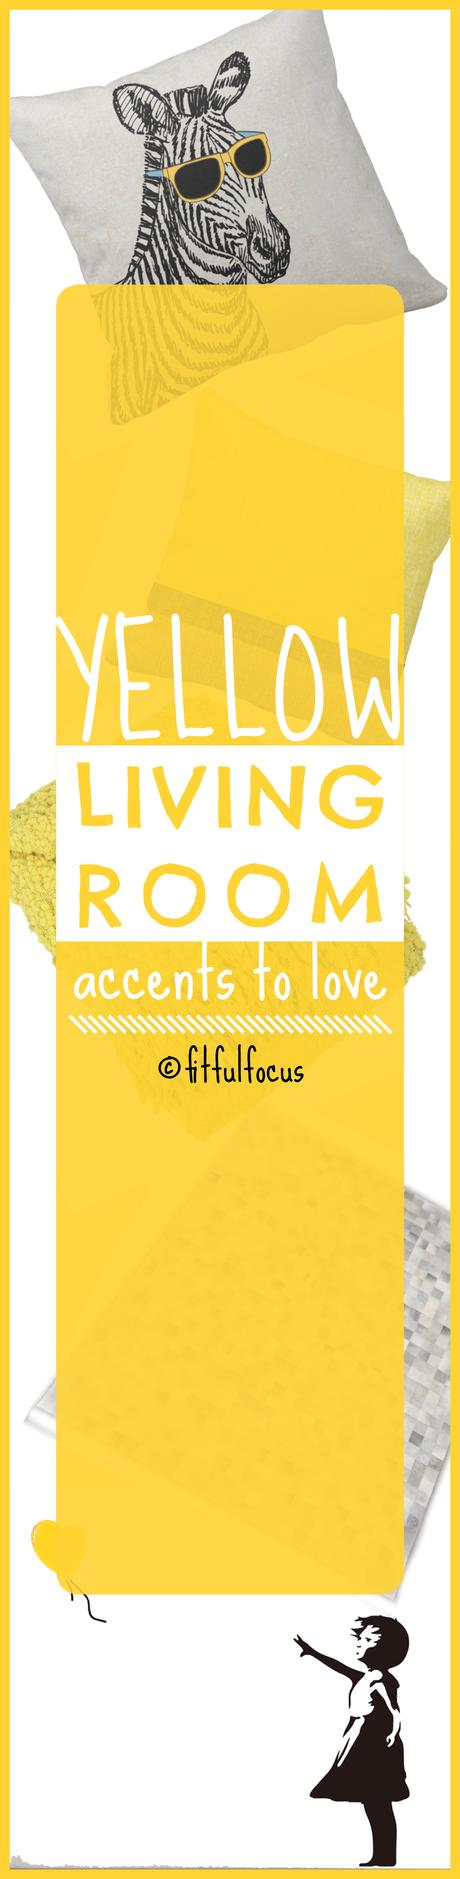 m paperblog com i yellow living room